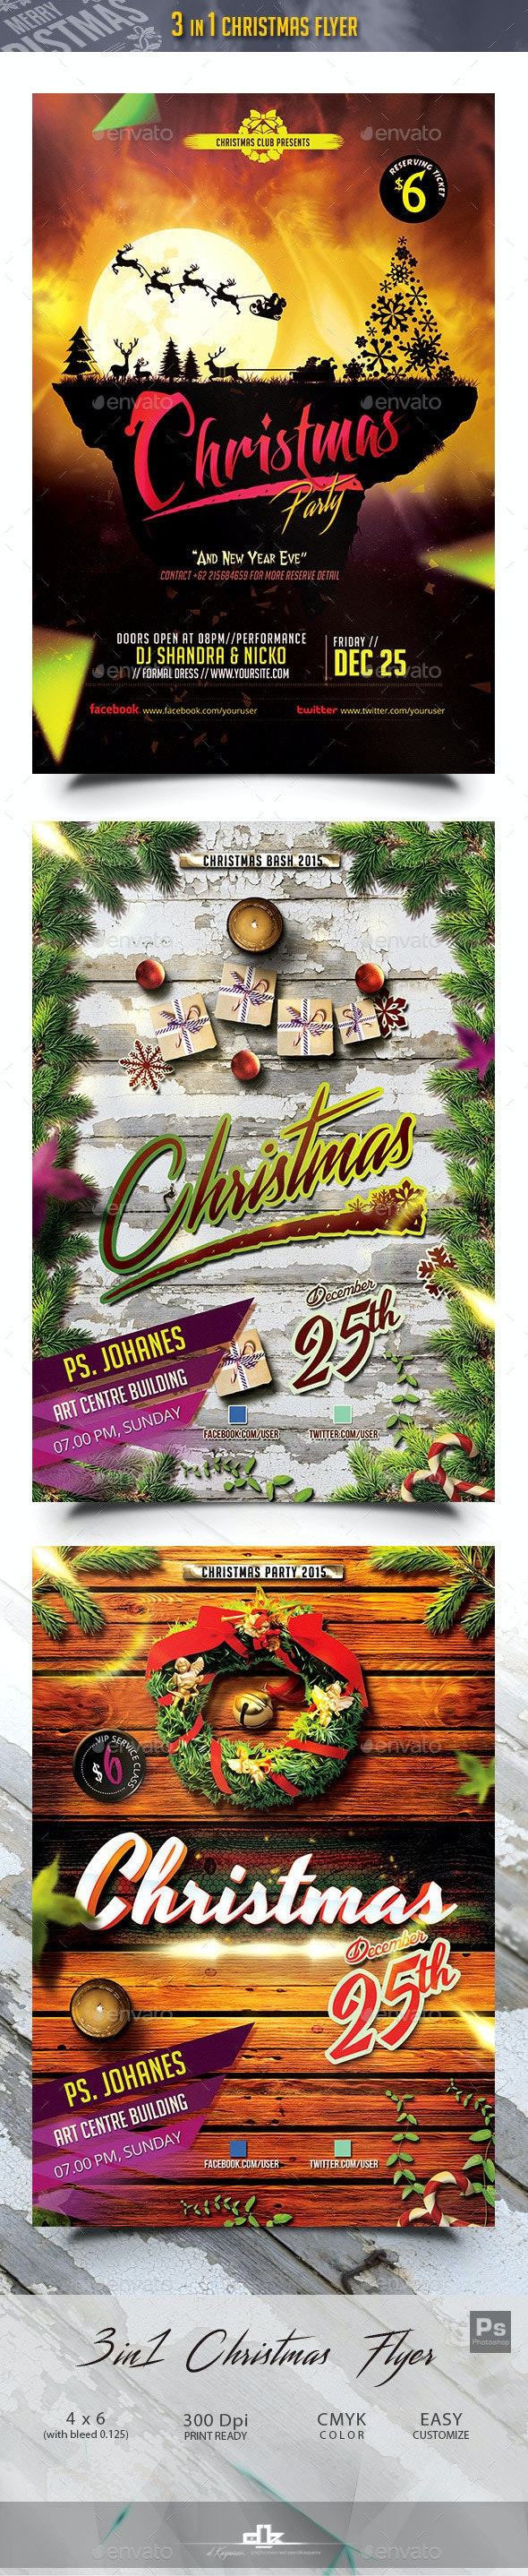 3 in 1 Christmas Flyer 2015 Bundle - Holidays Events